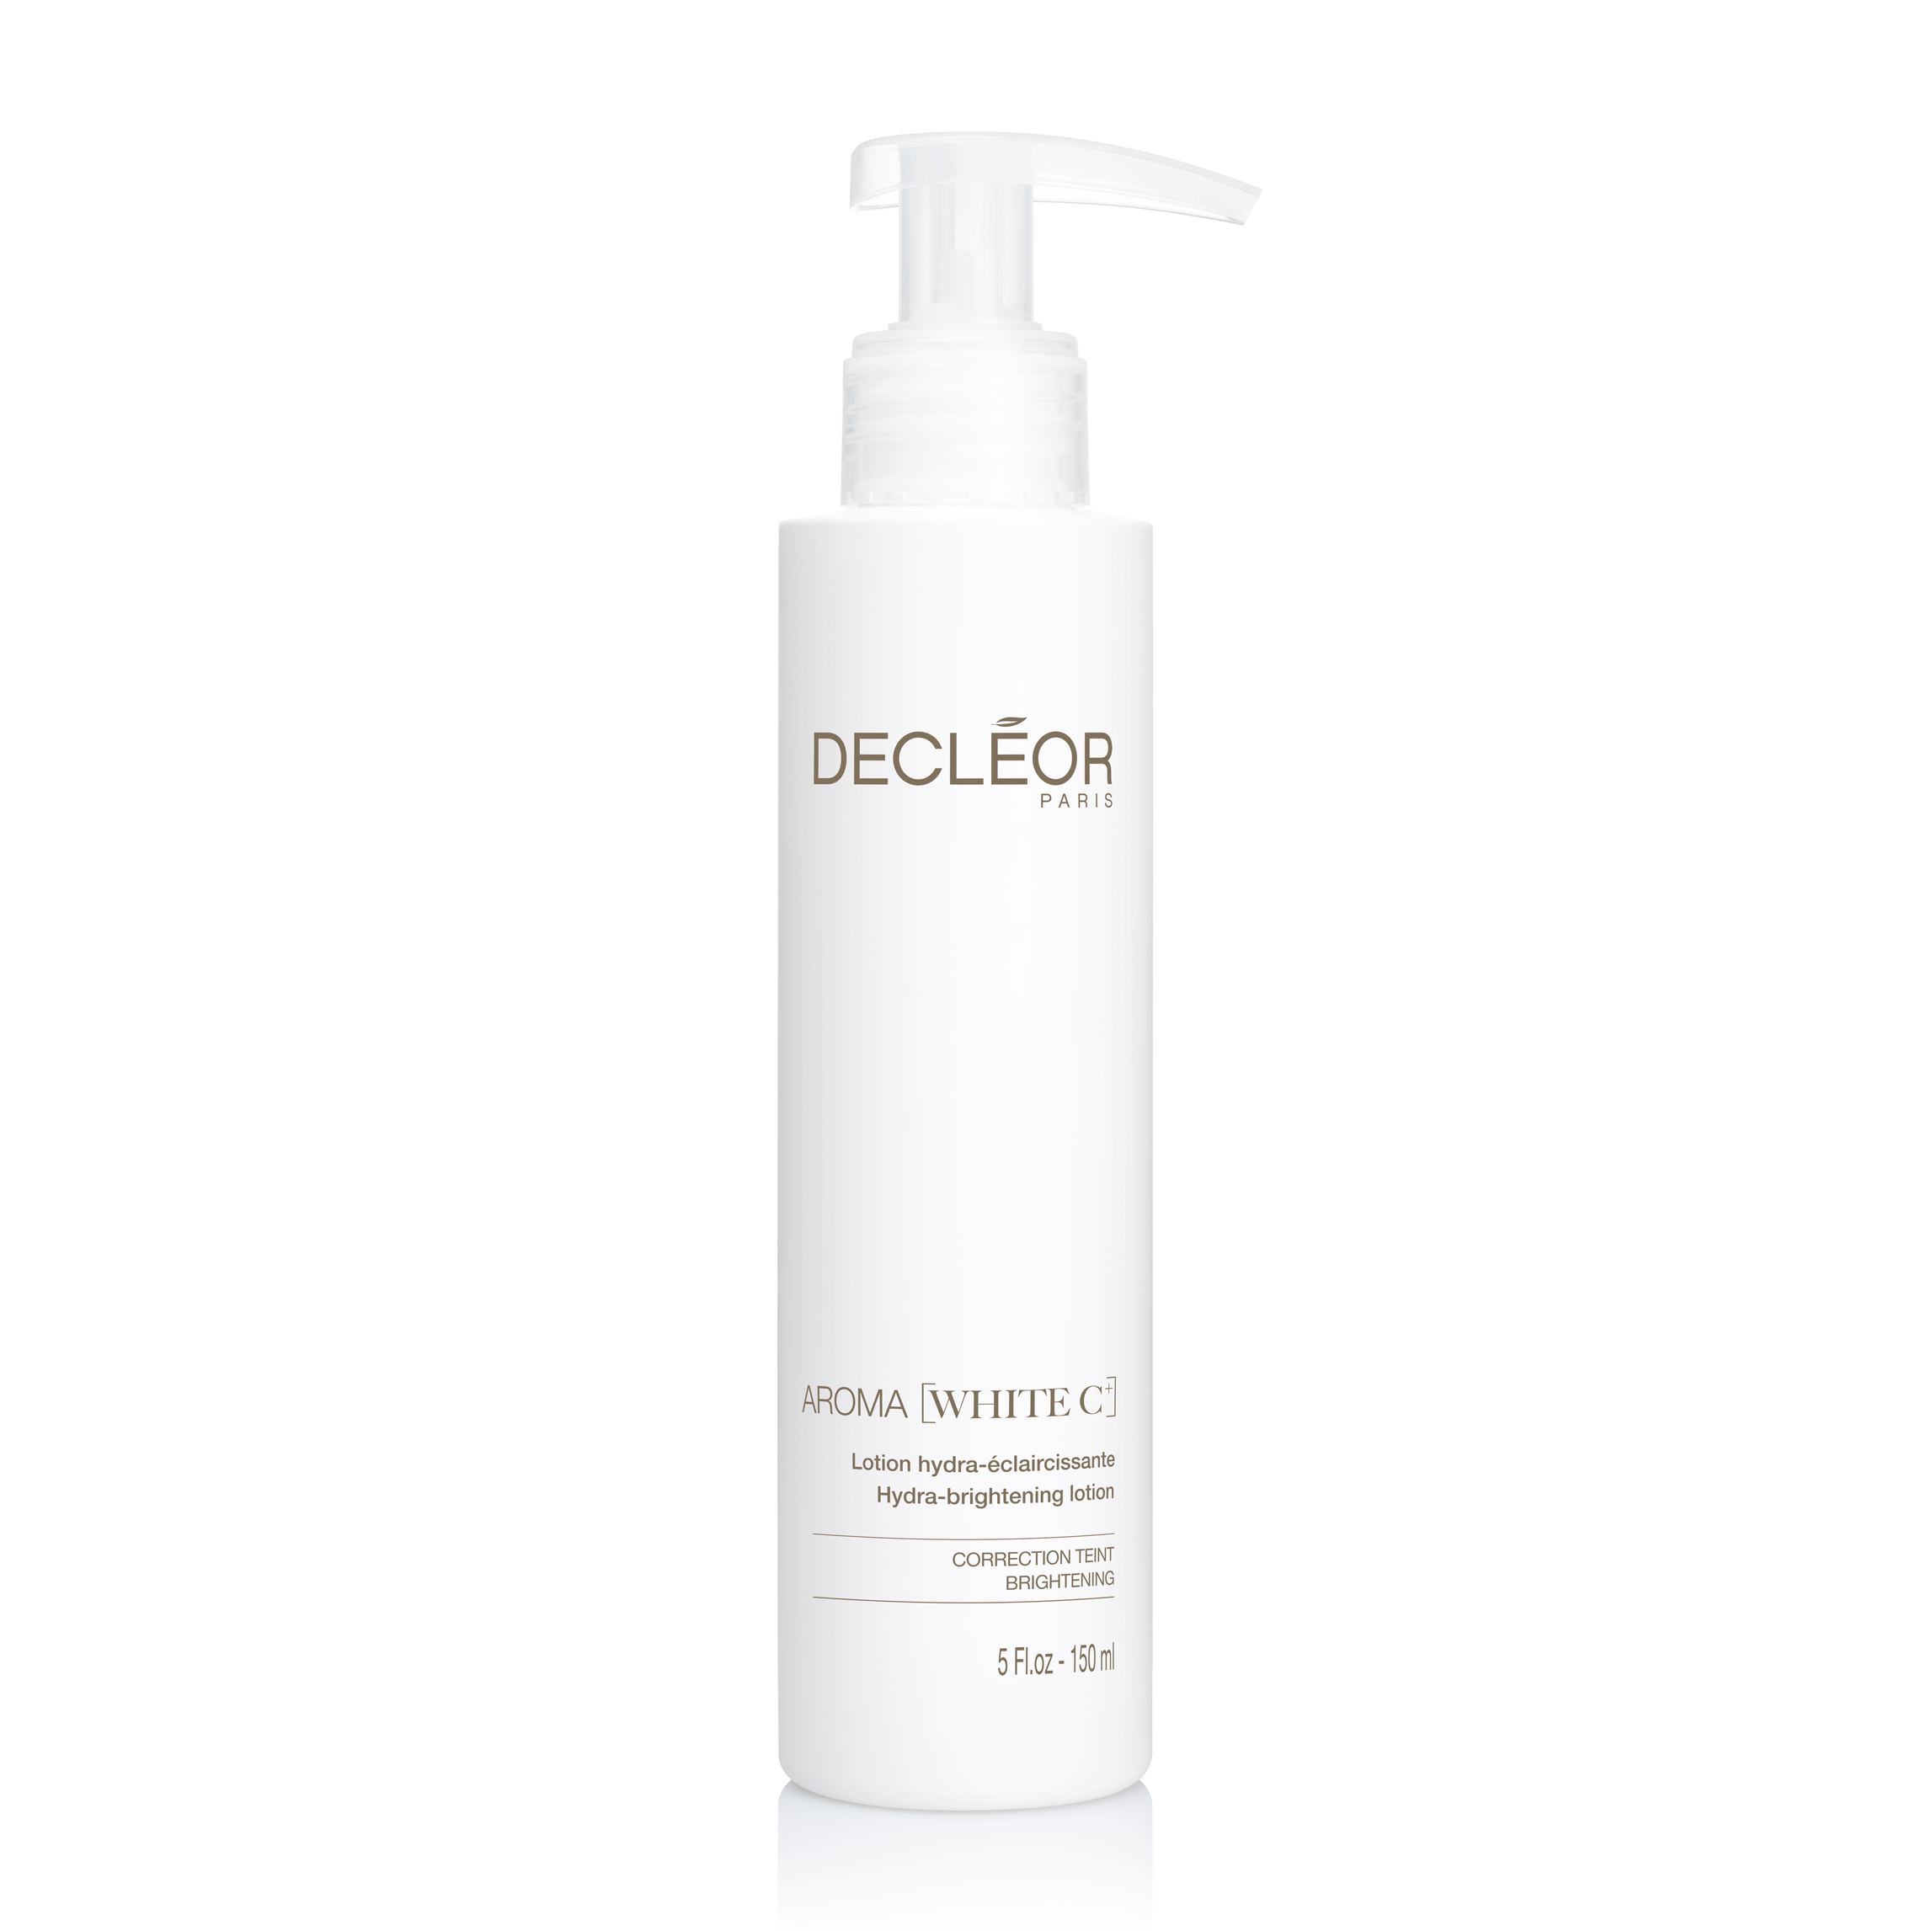 Image of Decleor Aroma White C+ Hydra-Brightening Lotion 150ml